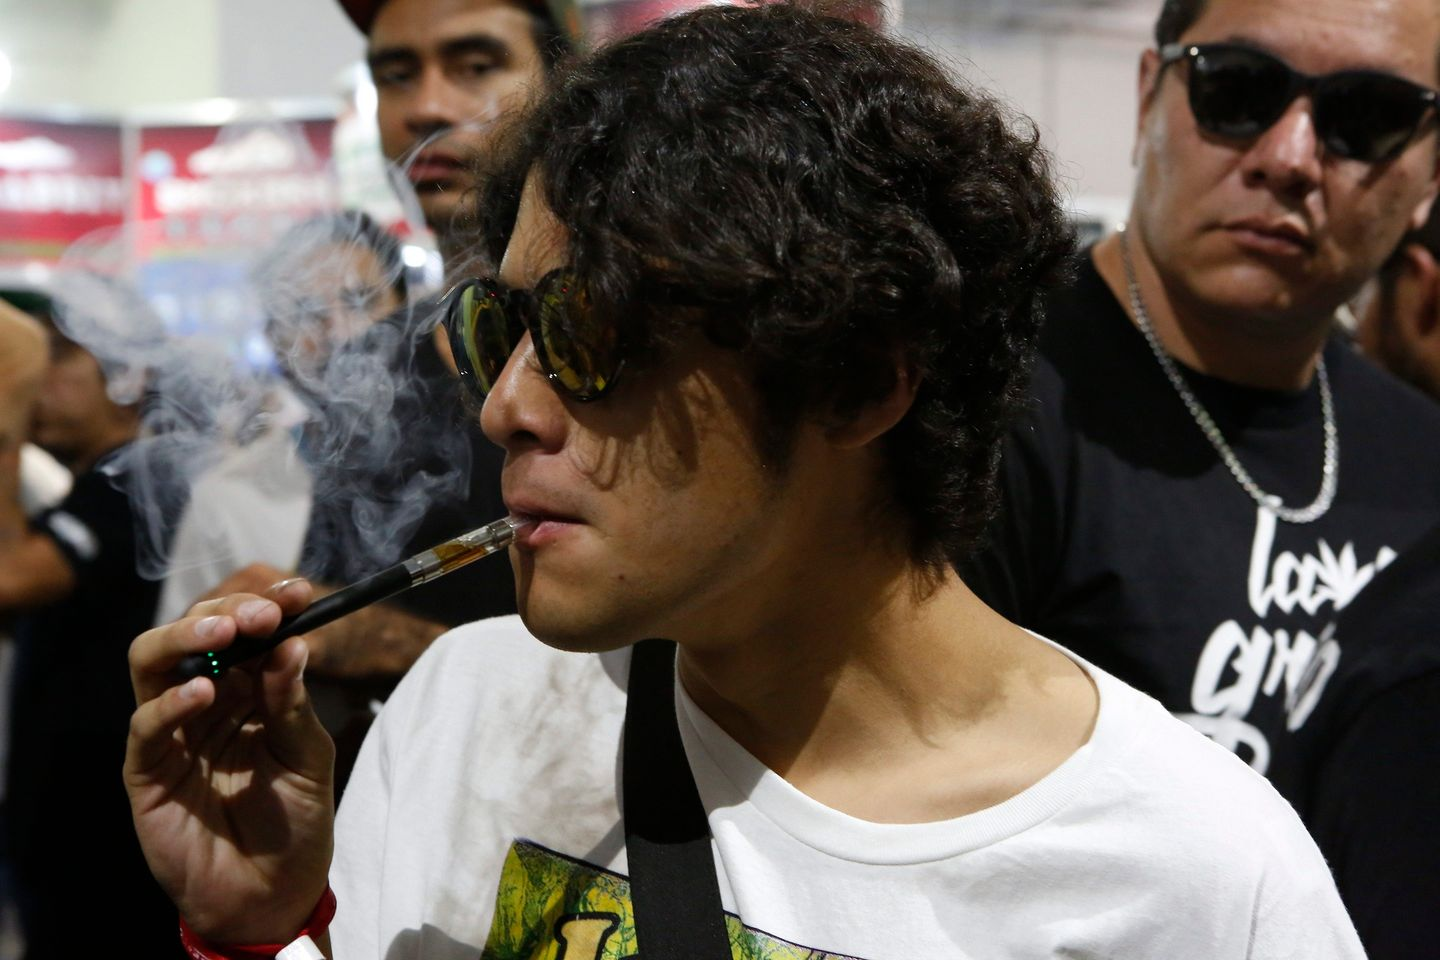 Mexican cannabis users eagerly await legal marijuana